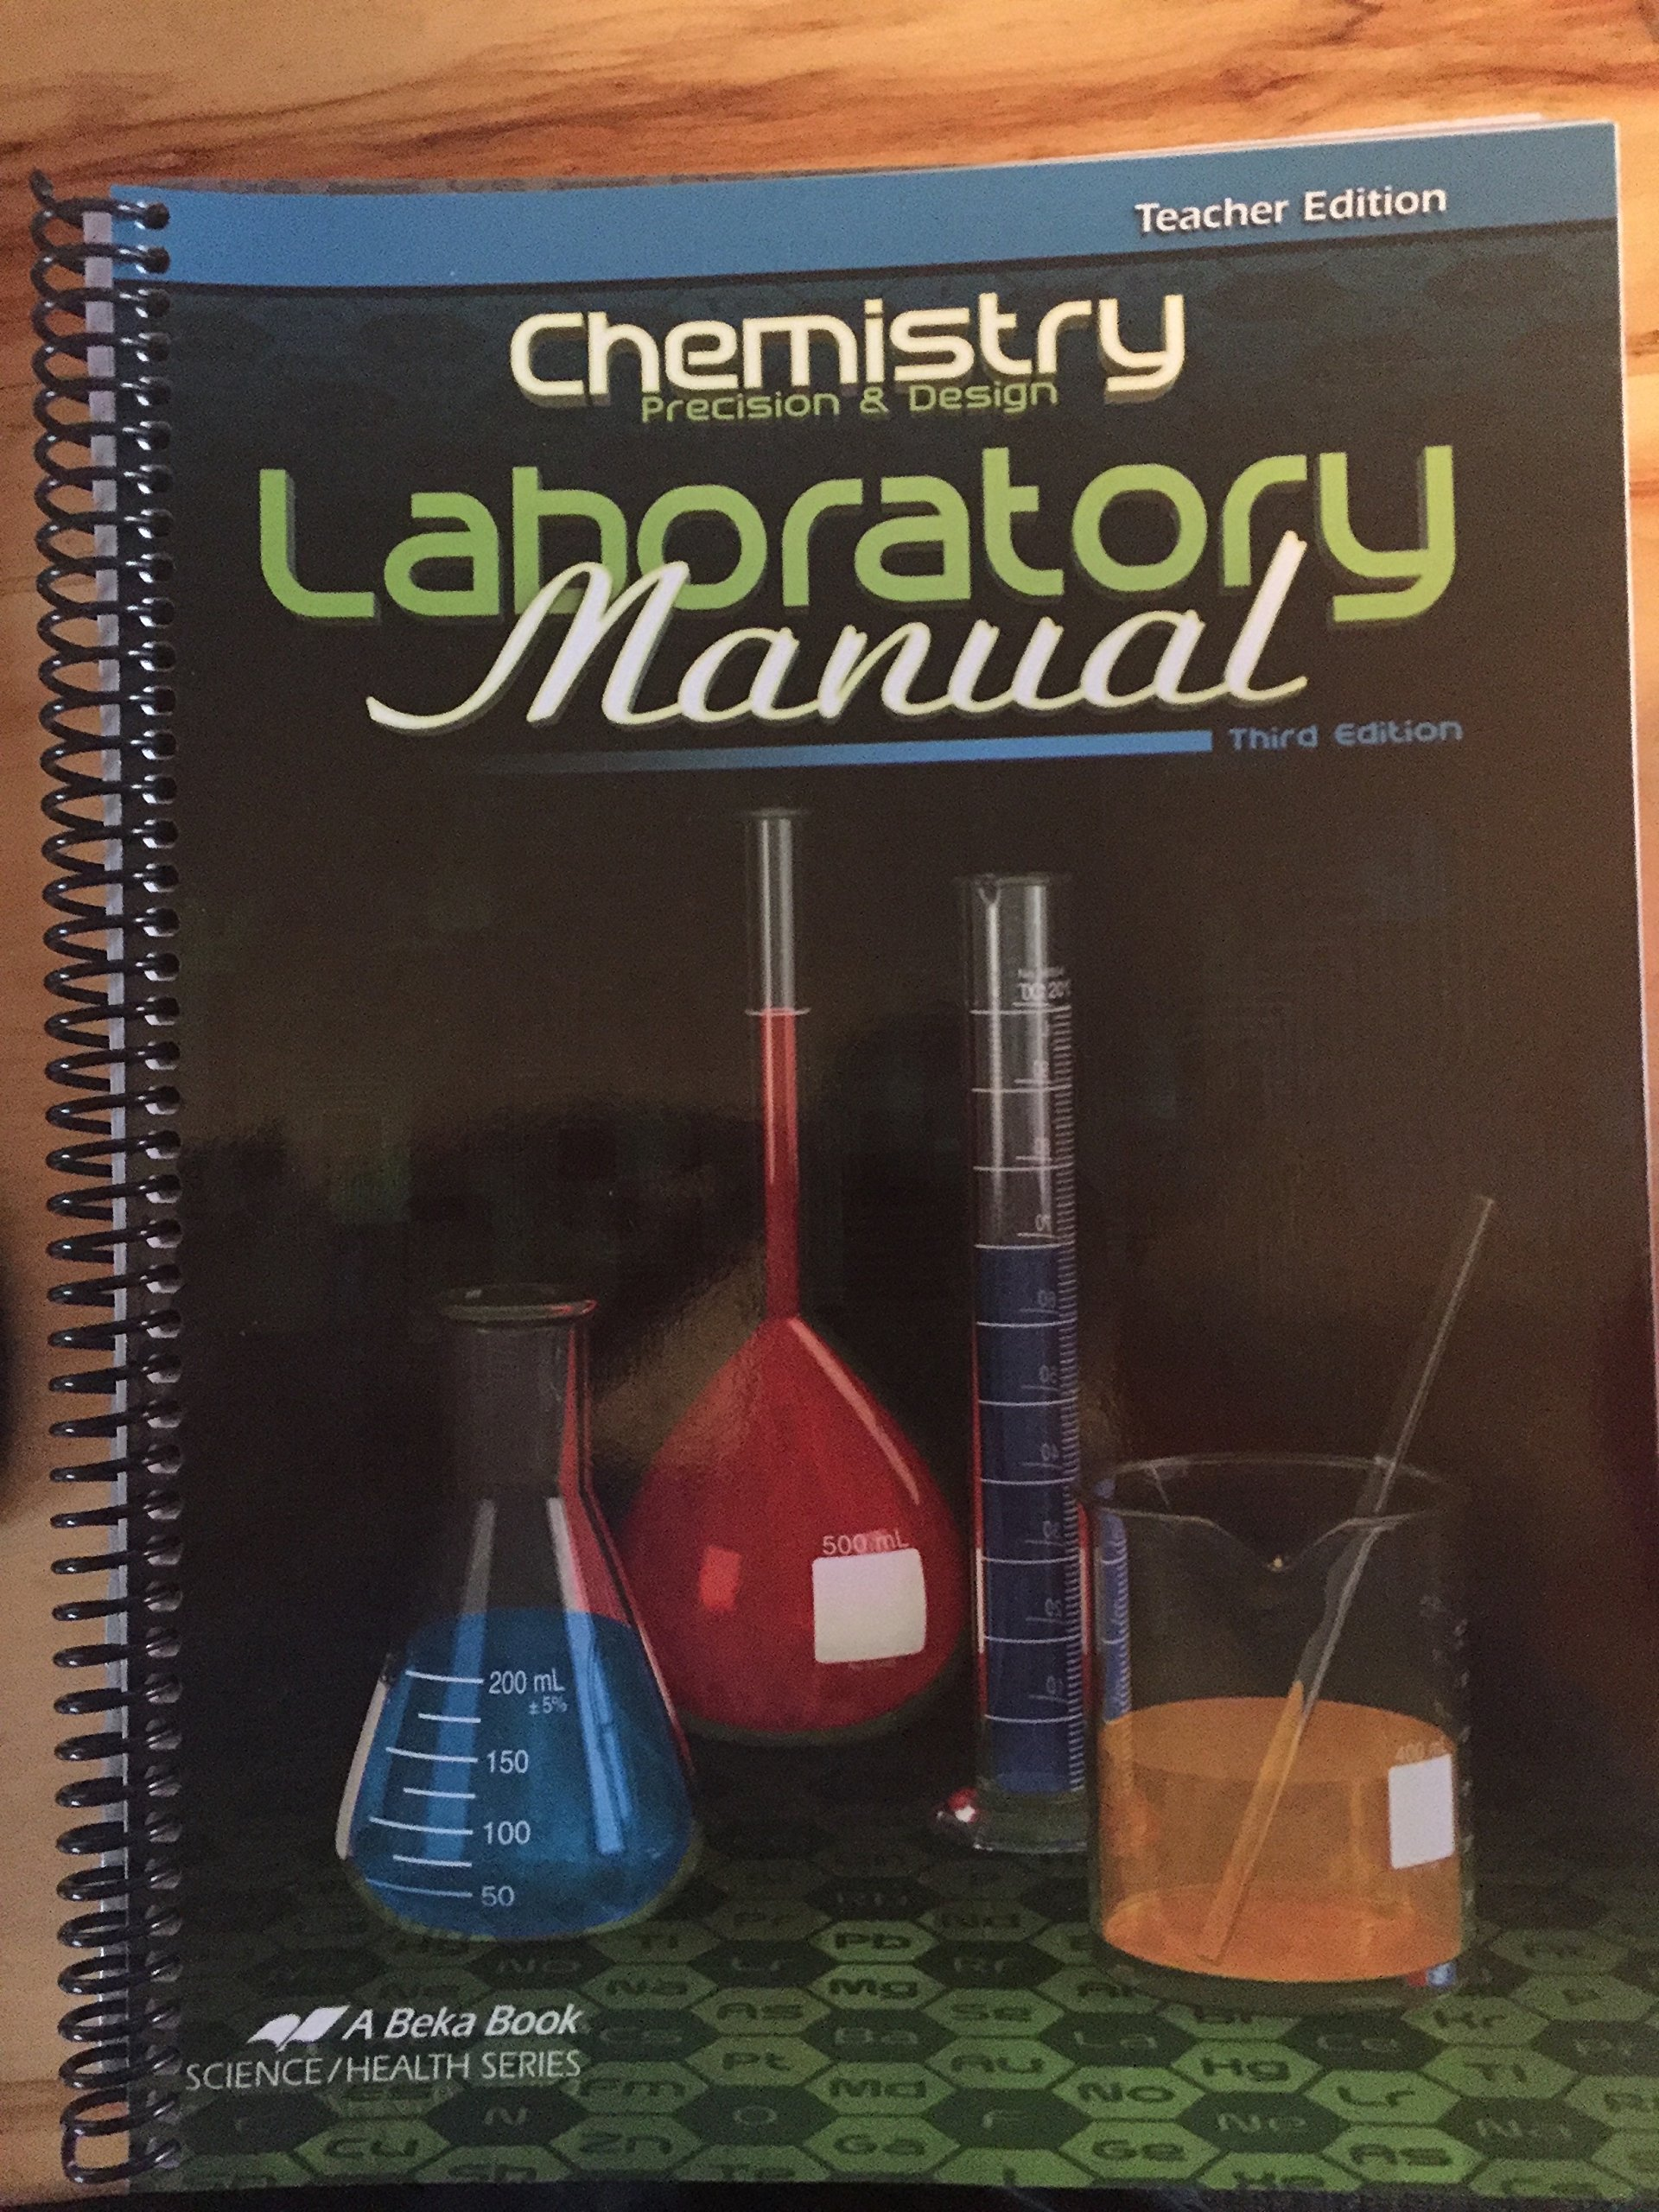 Chemistry: Precision and Design Laboratory Manual, Teacher Edition (3rd  Edition, 18303201): A Beka Book: Amazon.com: Books